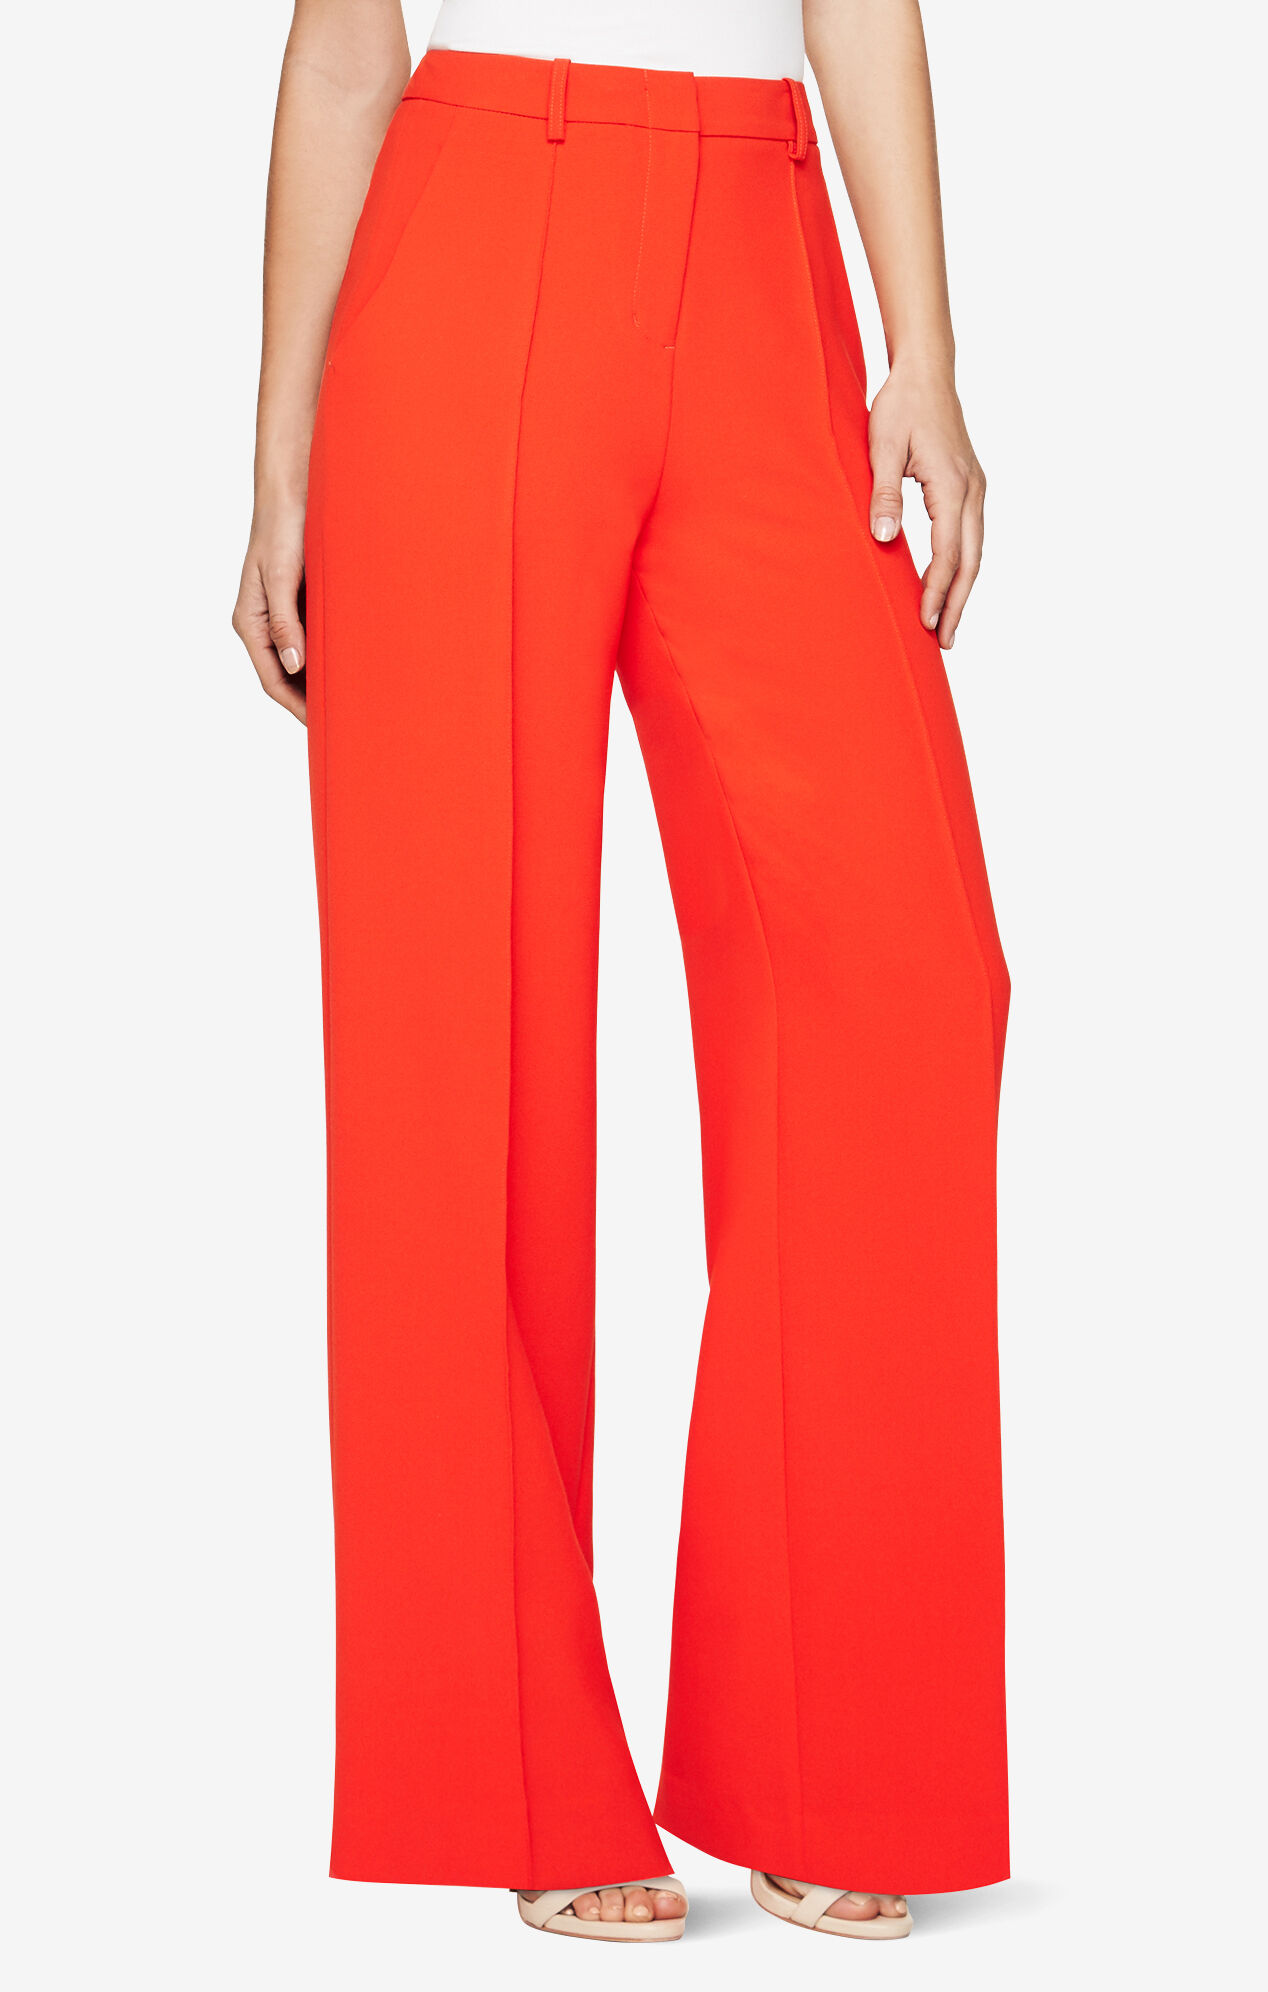 Streamline your figure in this wide leg jumpsuit made from lightweight challis.